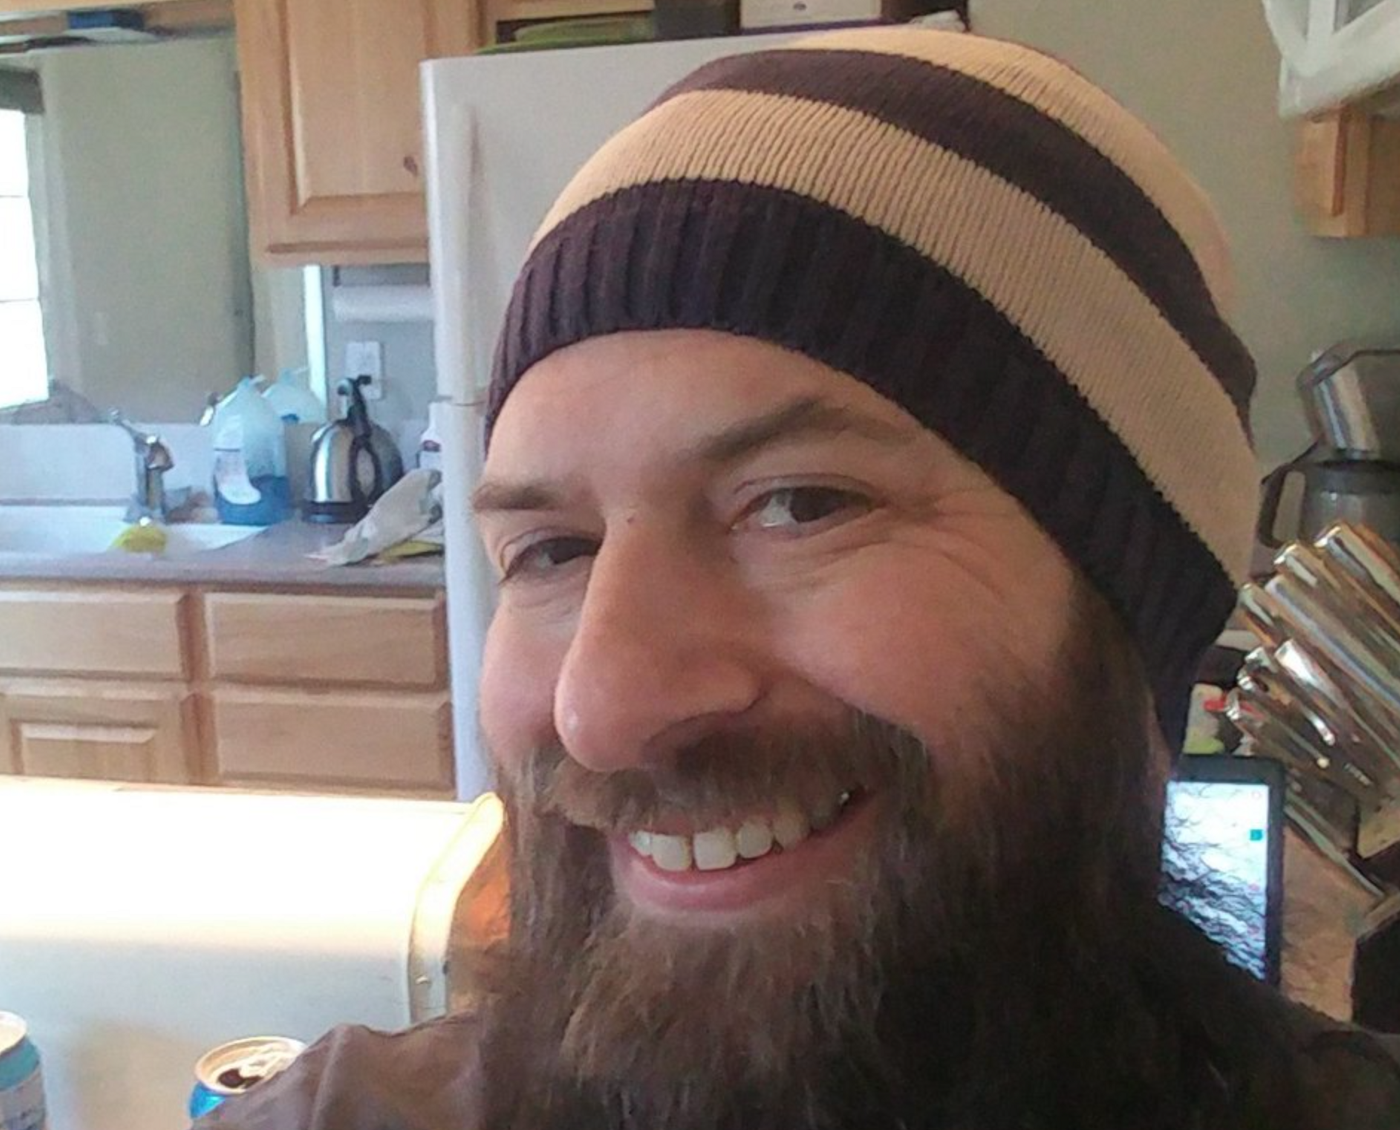 Photograph of the author, Hogan Torah, grinning, wearing beige and brown striped beanie hat. Full beard. Appears to be in kitchen.